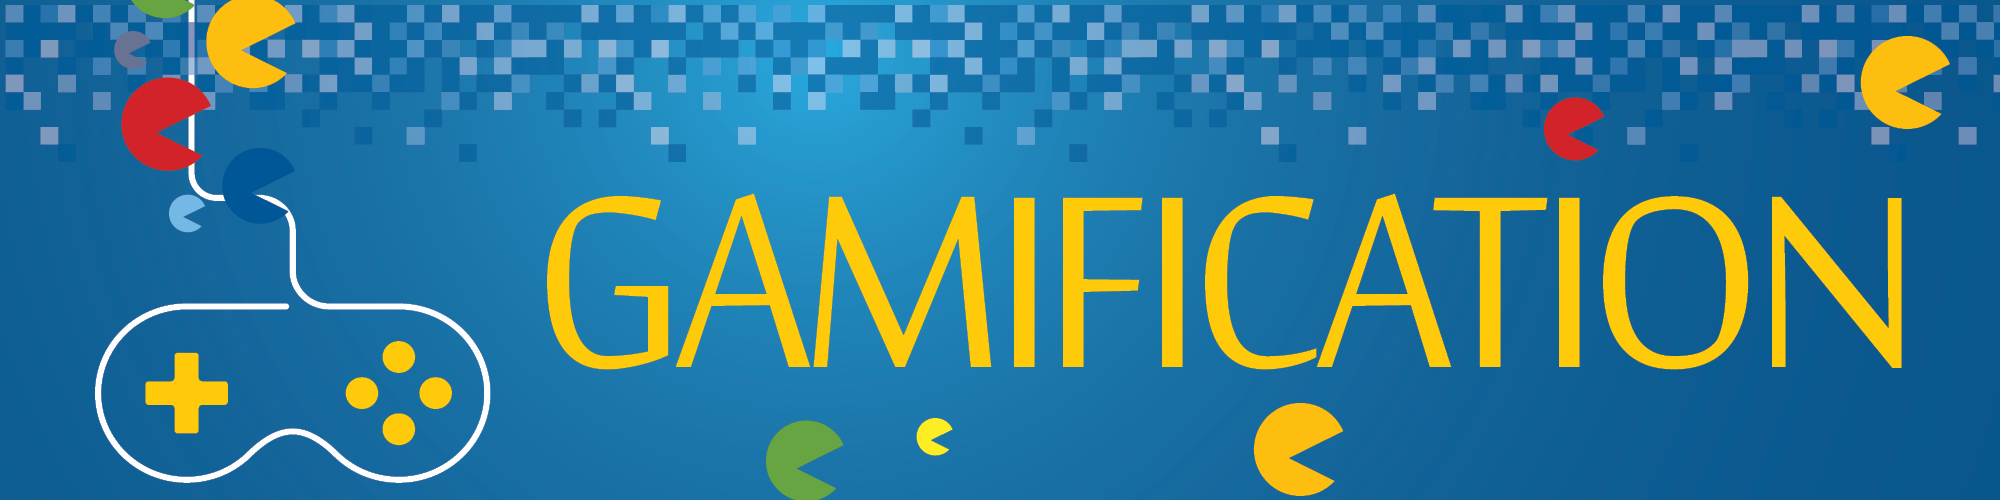 Gamification2000x500